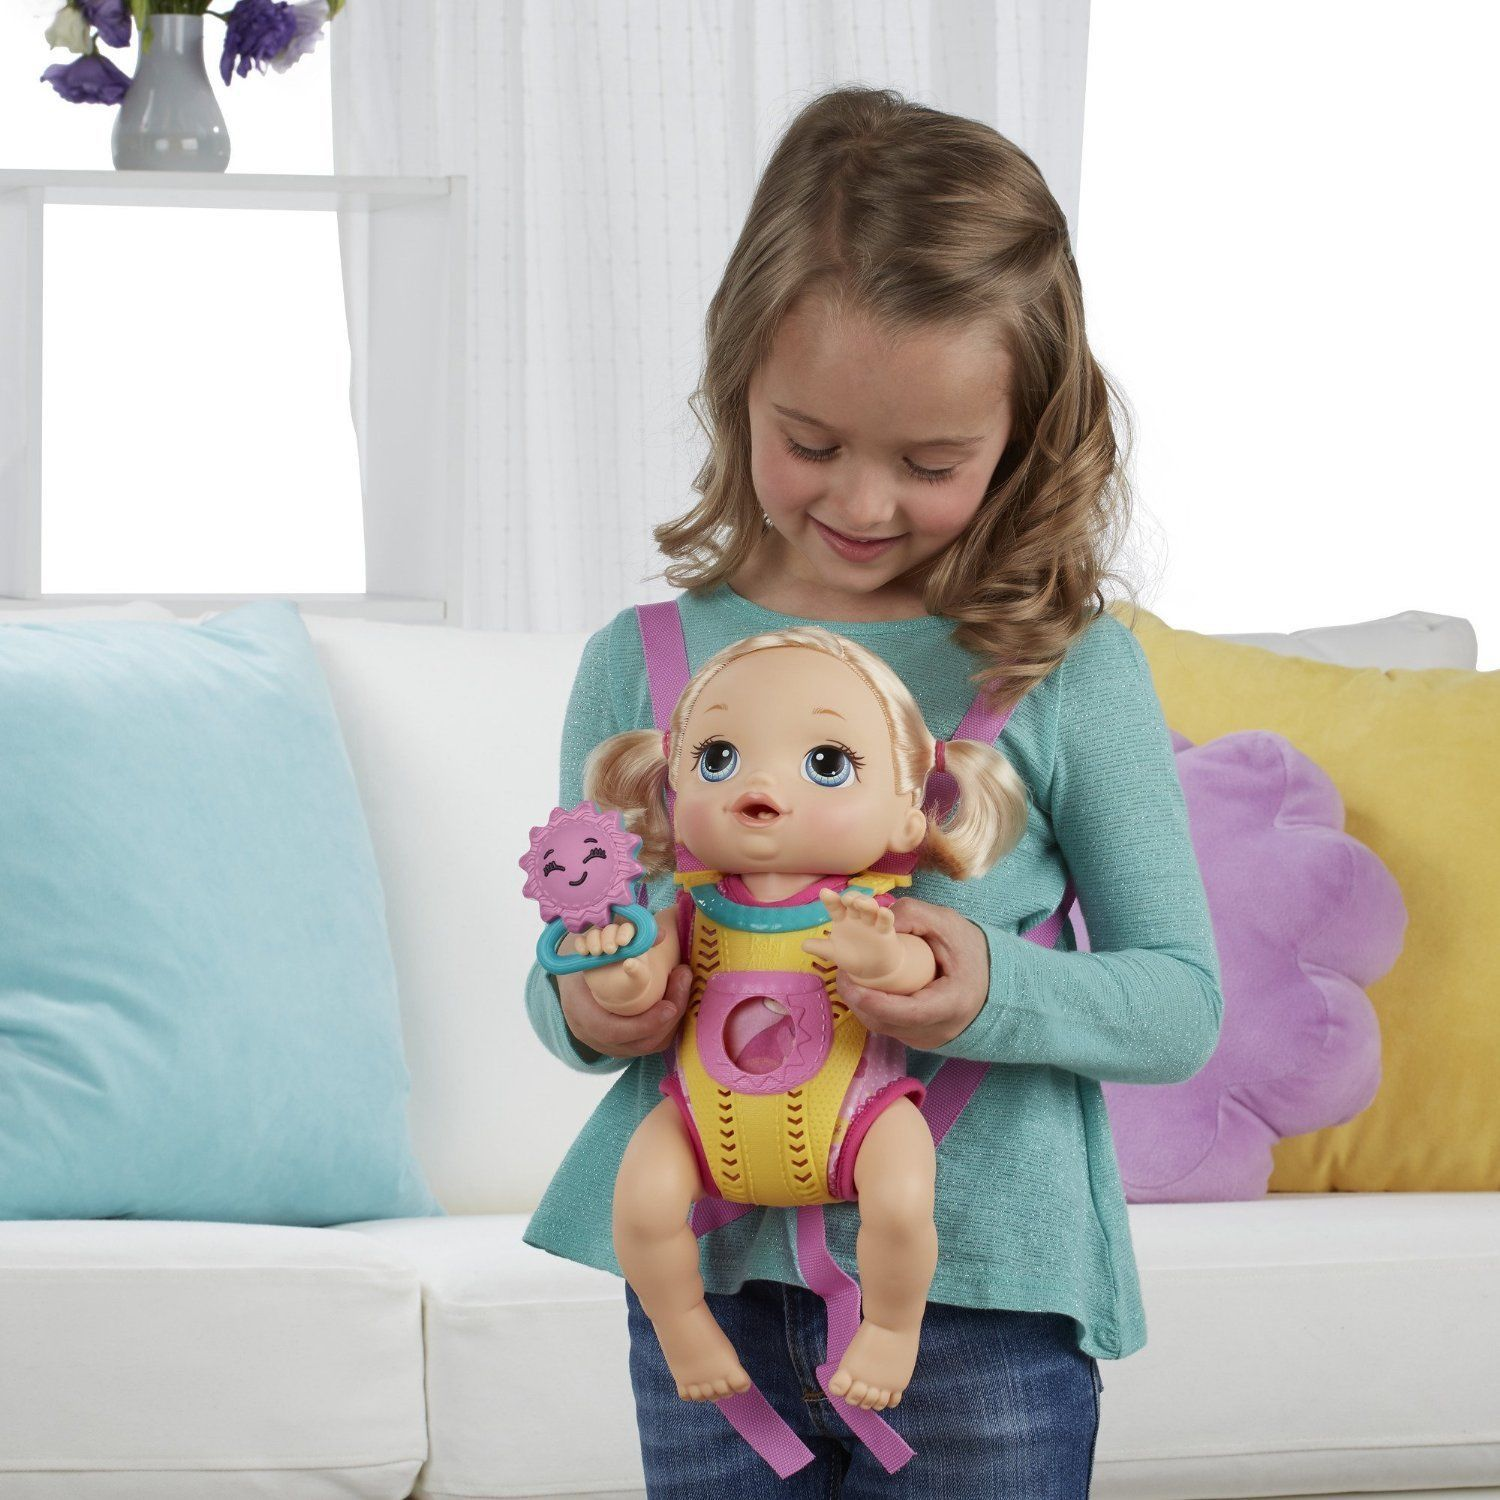 The Baby Go Bye Bye Doll Is A Baby Who Loves To Talk And Giggle With Different Ways For Girls To Play But Why Do They Call He Baby Alive Baby